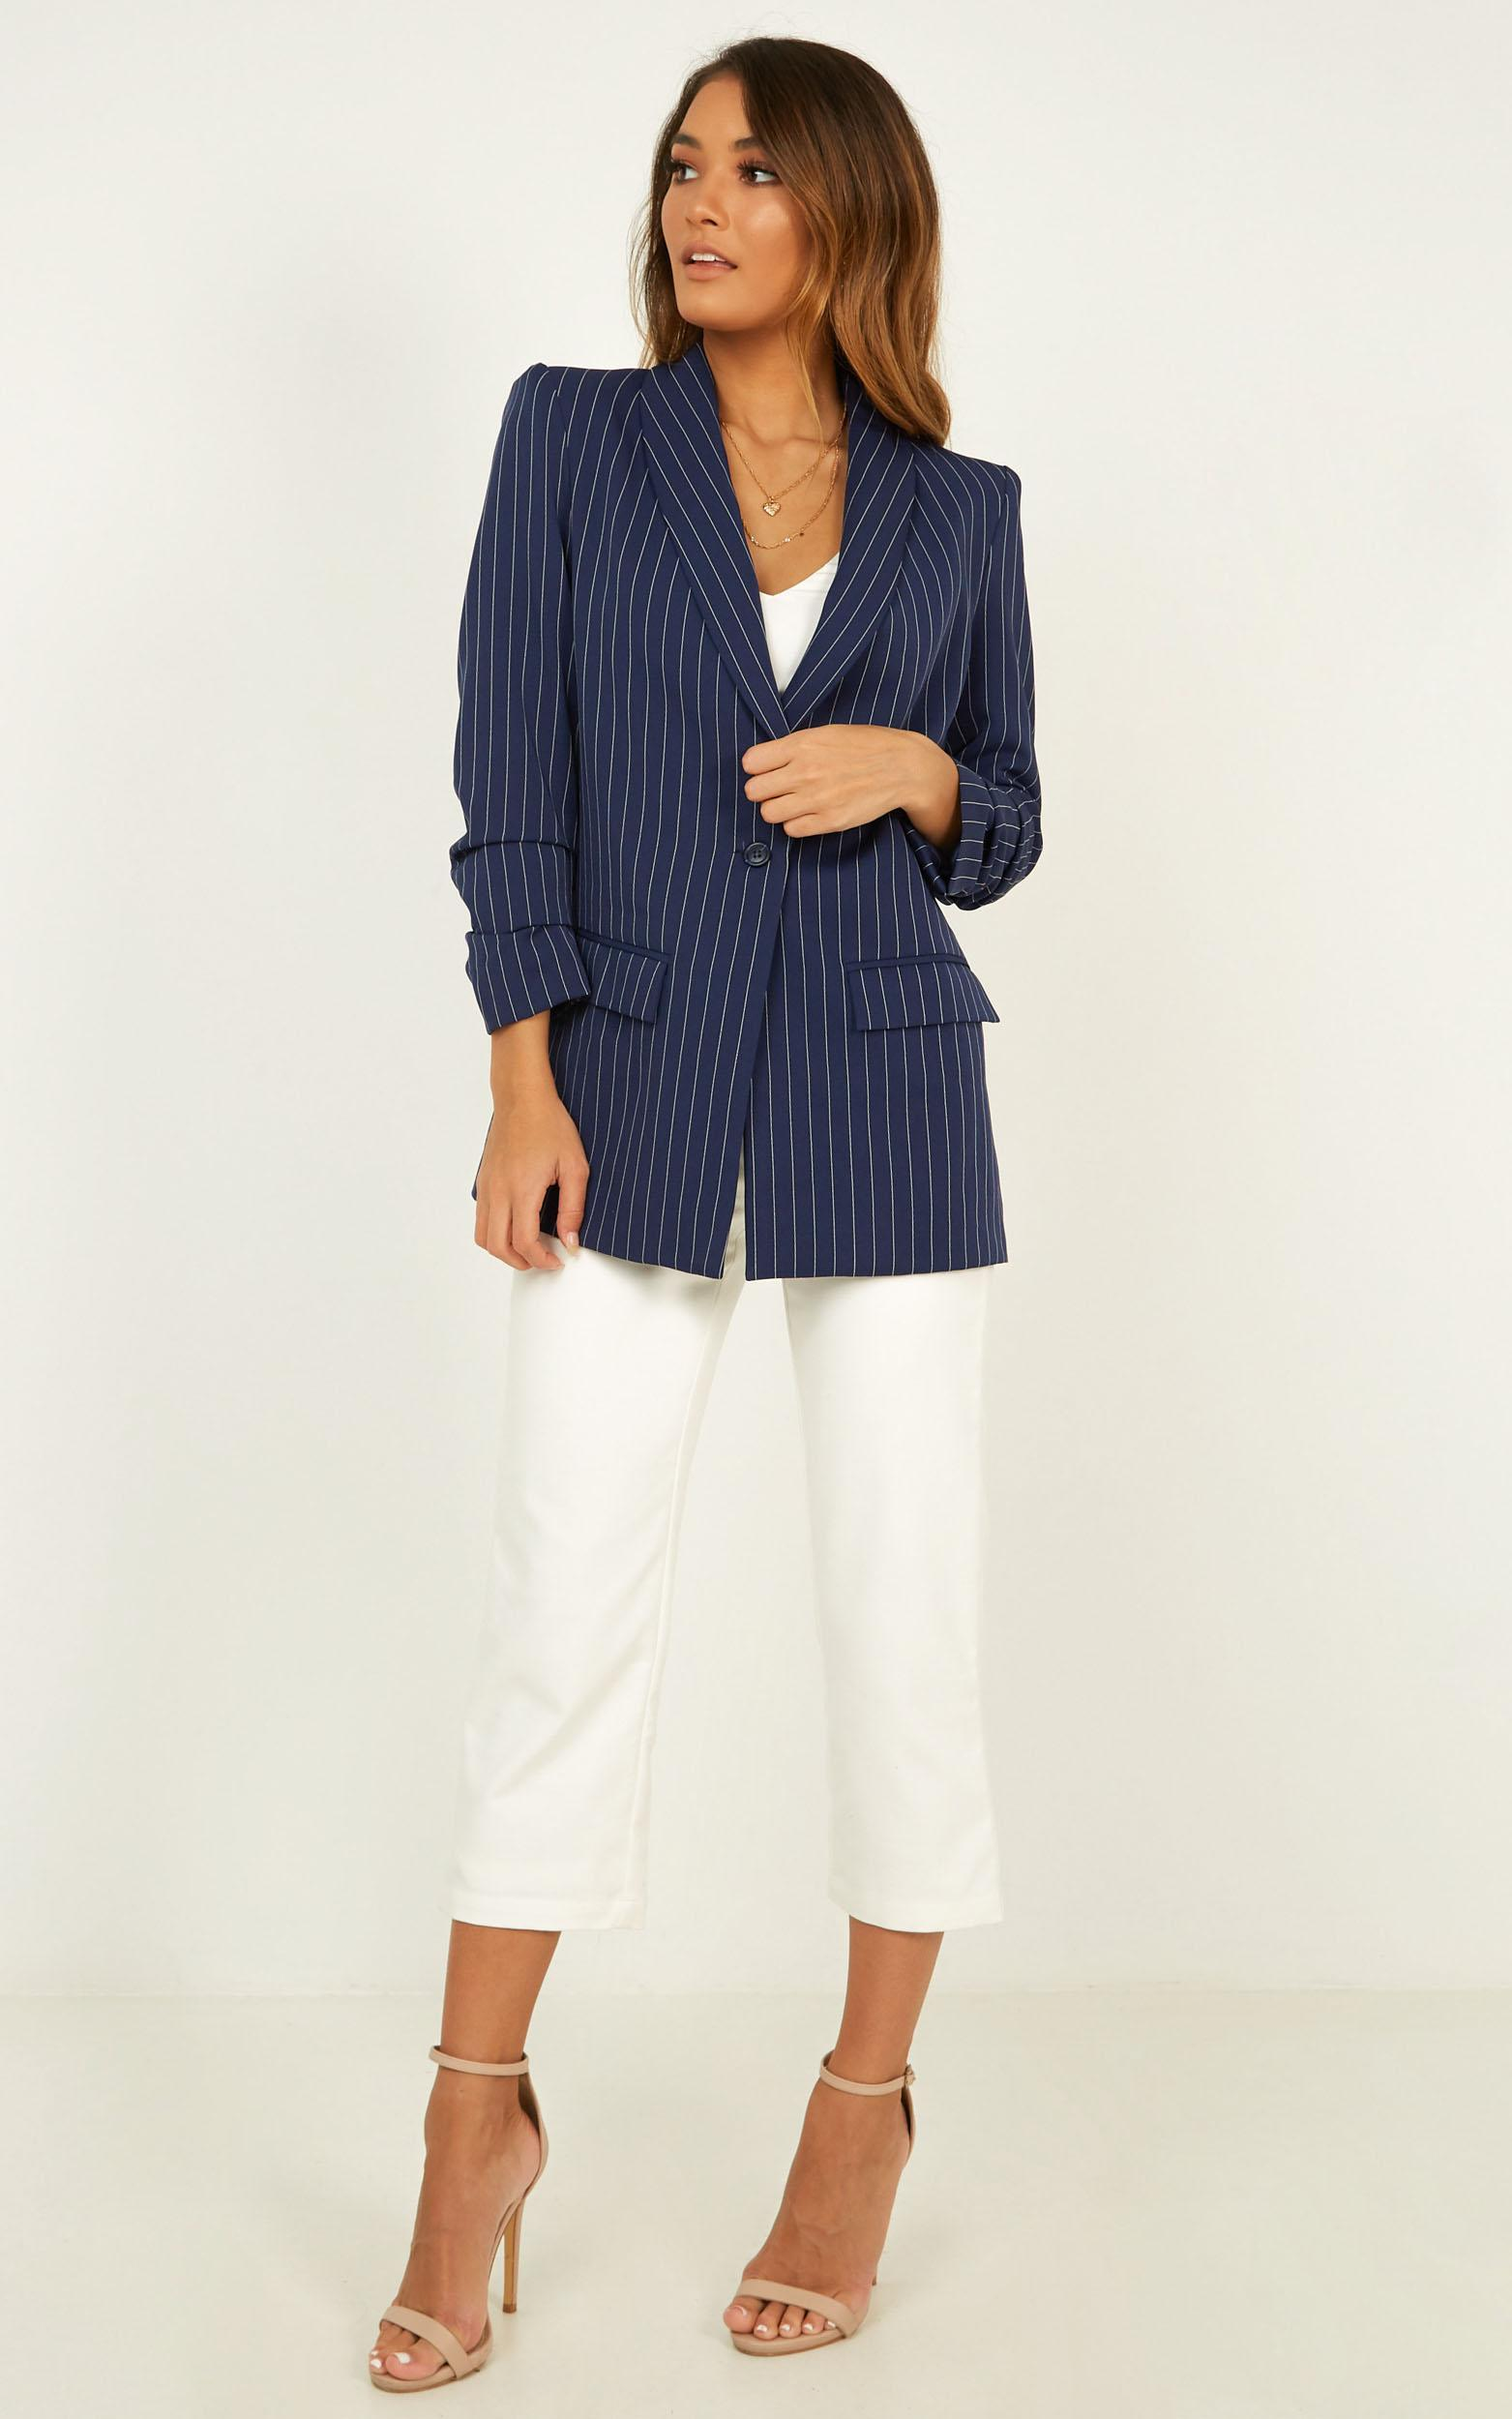 You Should Know Blazer In navy stripe - 16 (XXL), Navy, hi-res image number null